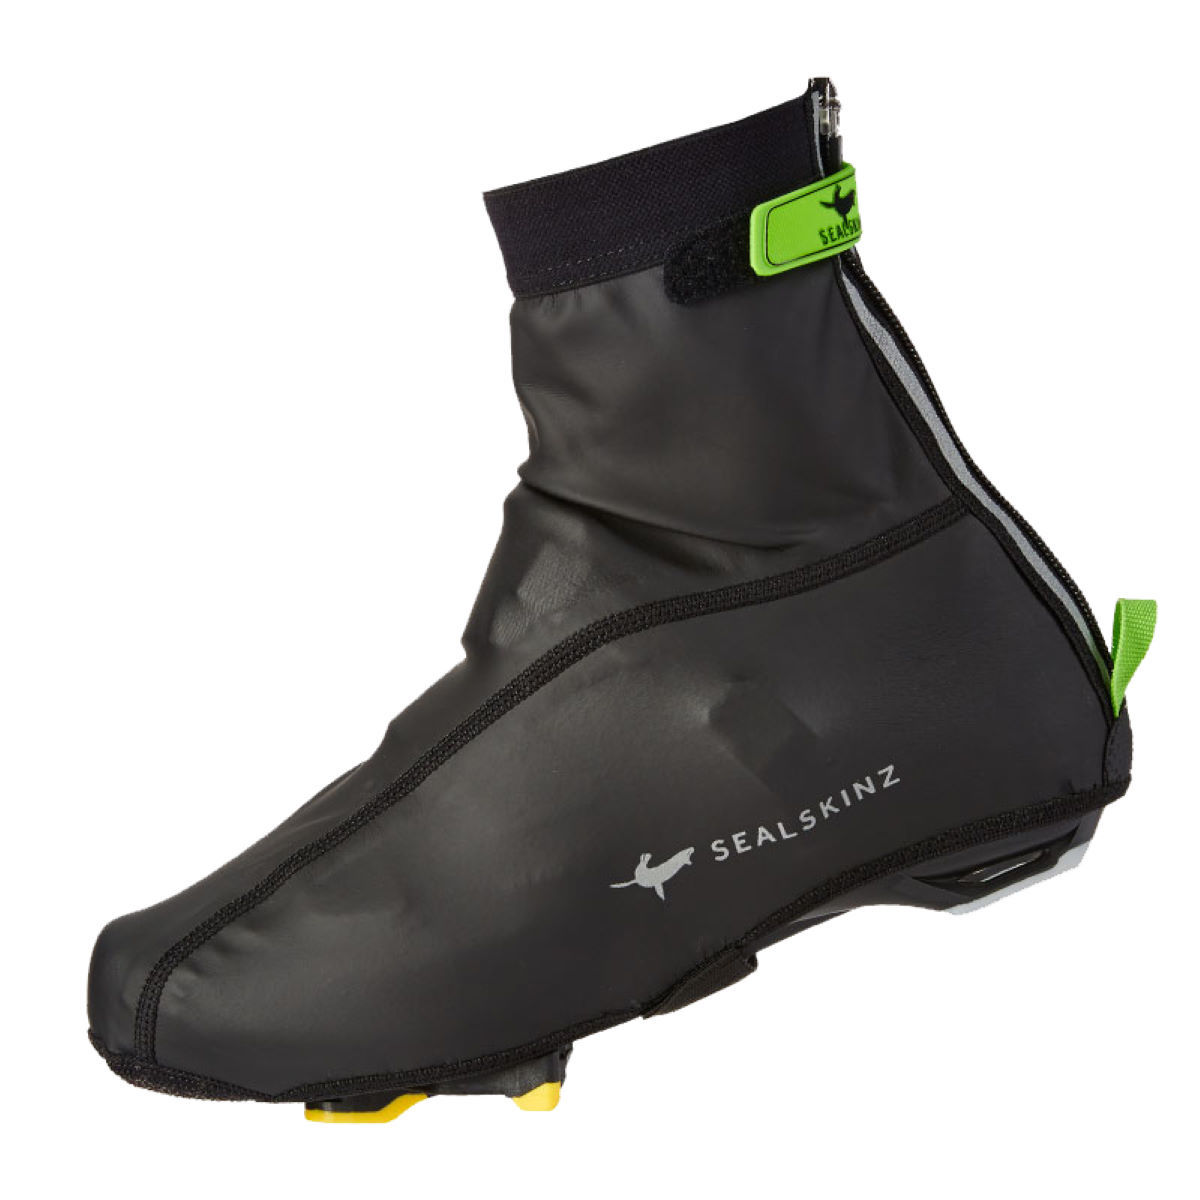 SealSkinz Lightweight Overshoes - Still available.